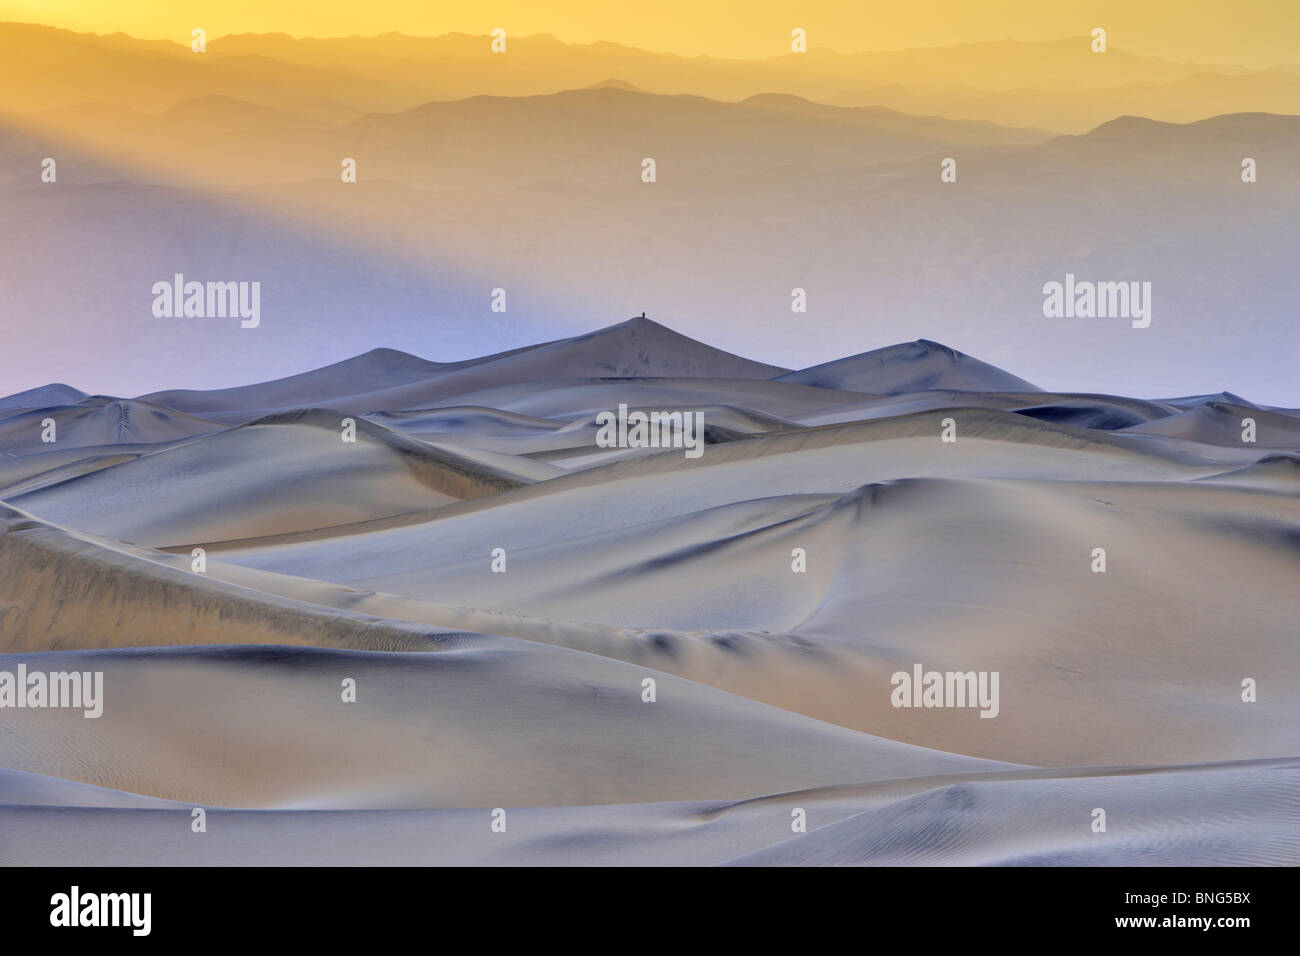 Sand dunes in a desert, Mesquite Flat Dunes, Death Valley, Panamint Range, California, USA Stock Foto